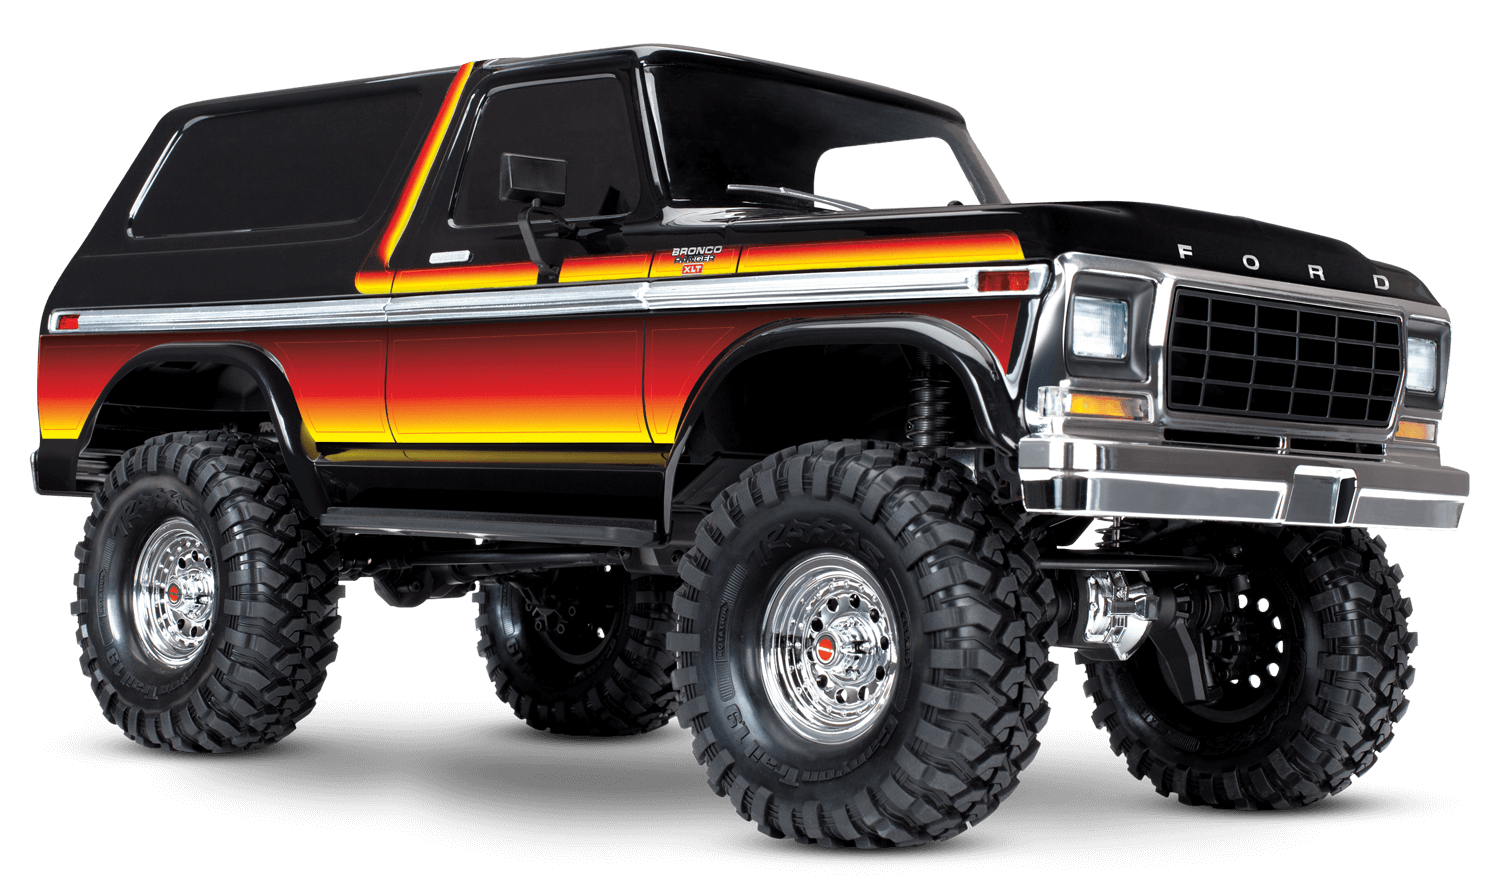 Trx 4 Scale And Trail Crawler With Ford Bronco Body Underground Rc Raceway Hobbies